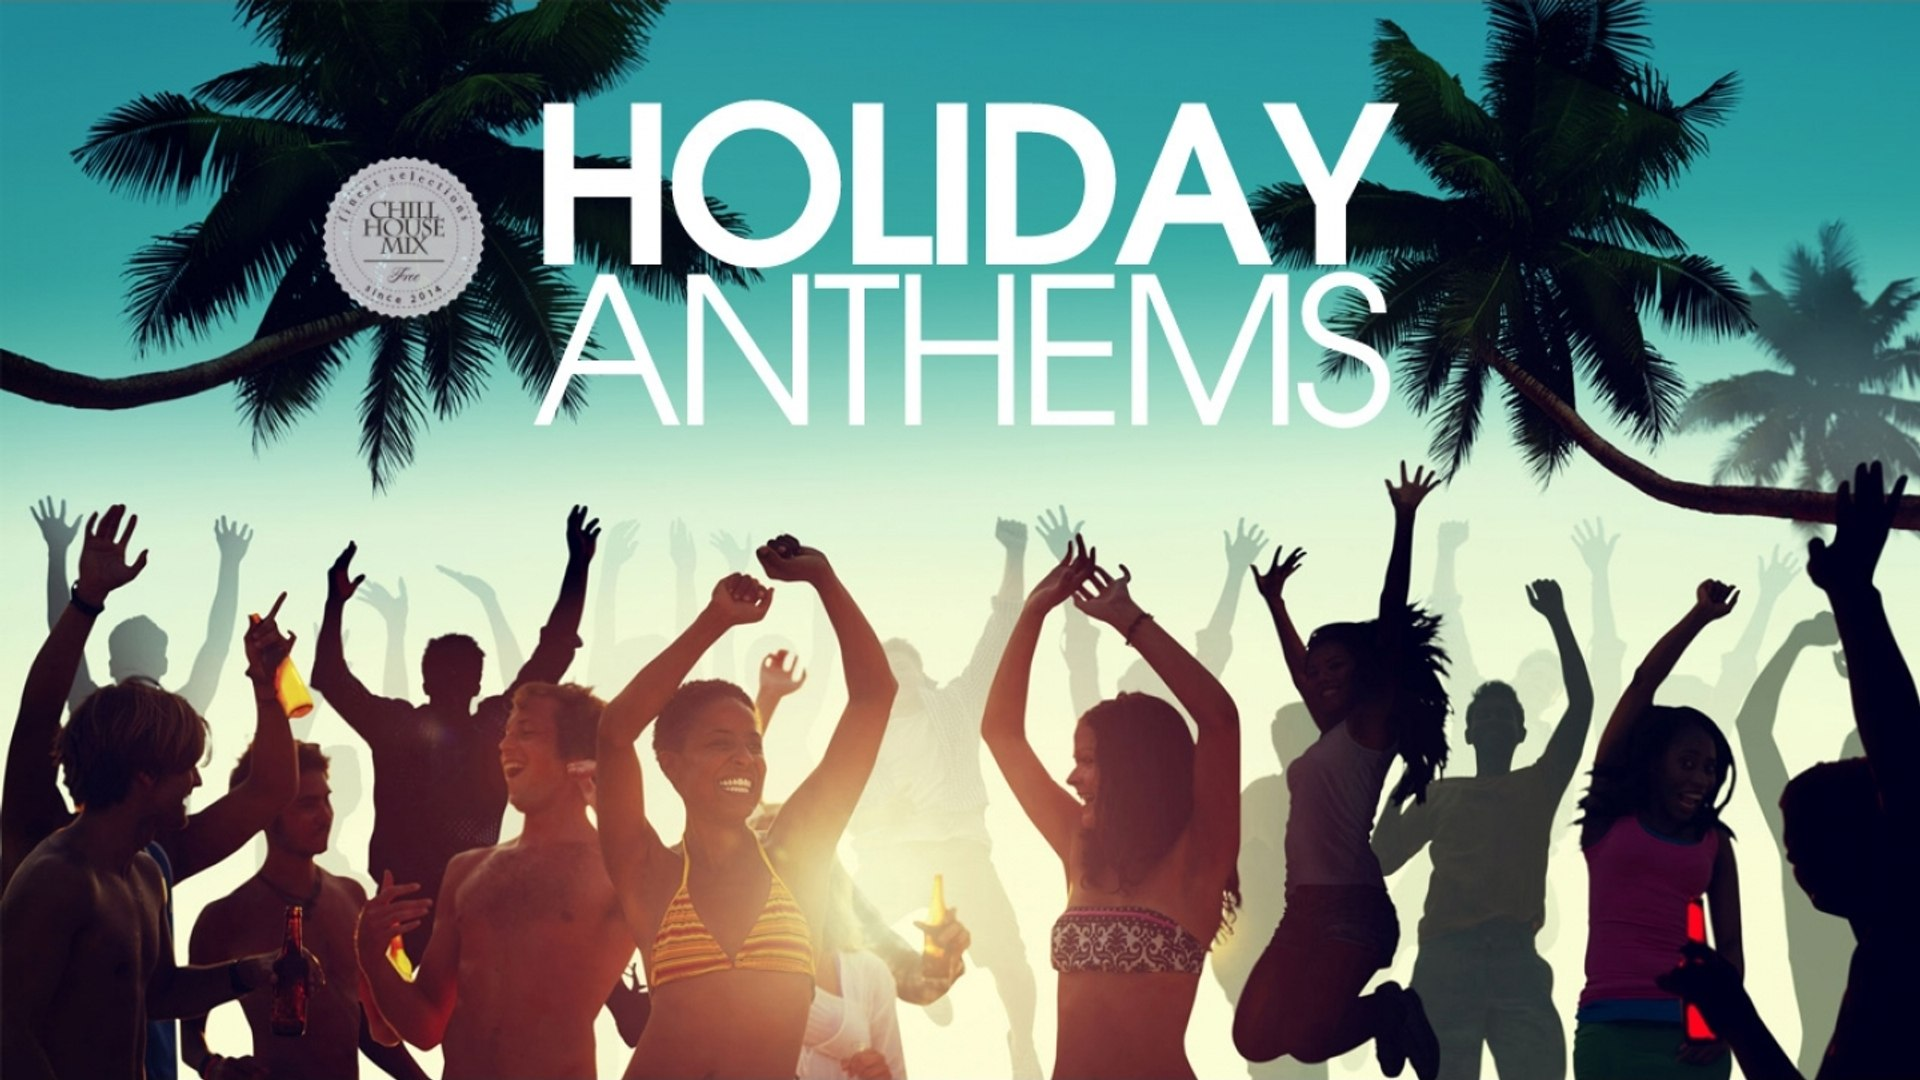 Holiday Anthems - ★ Summer Dance House Classics Mix